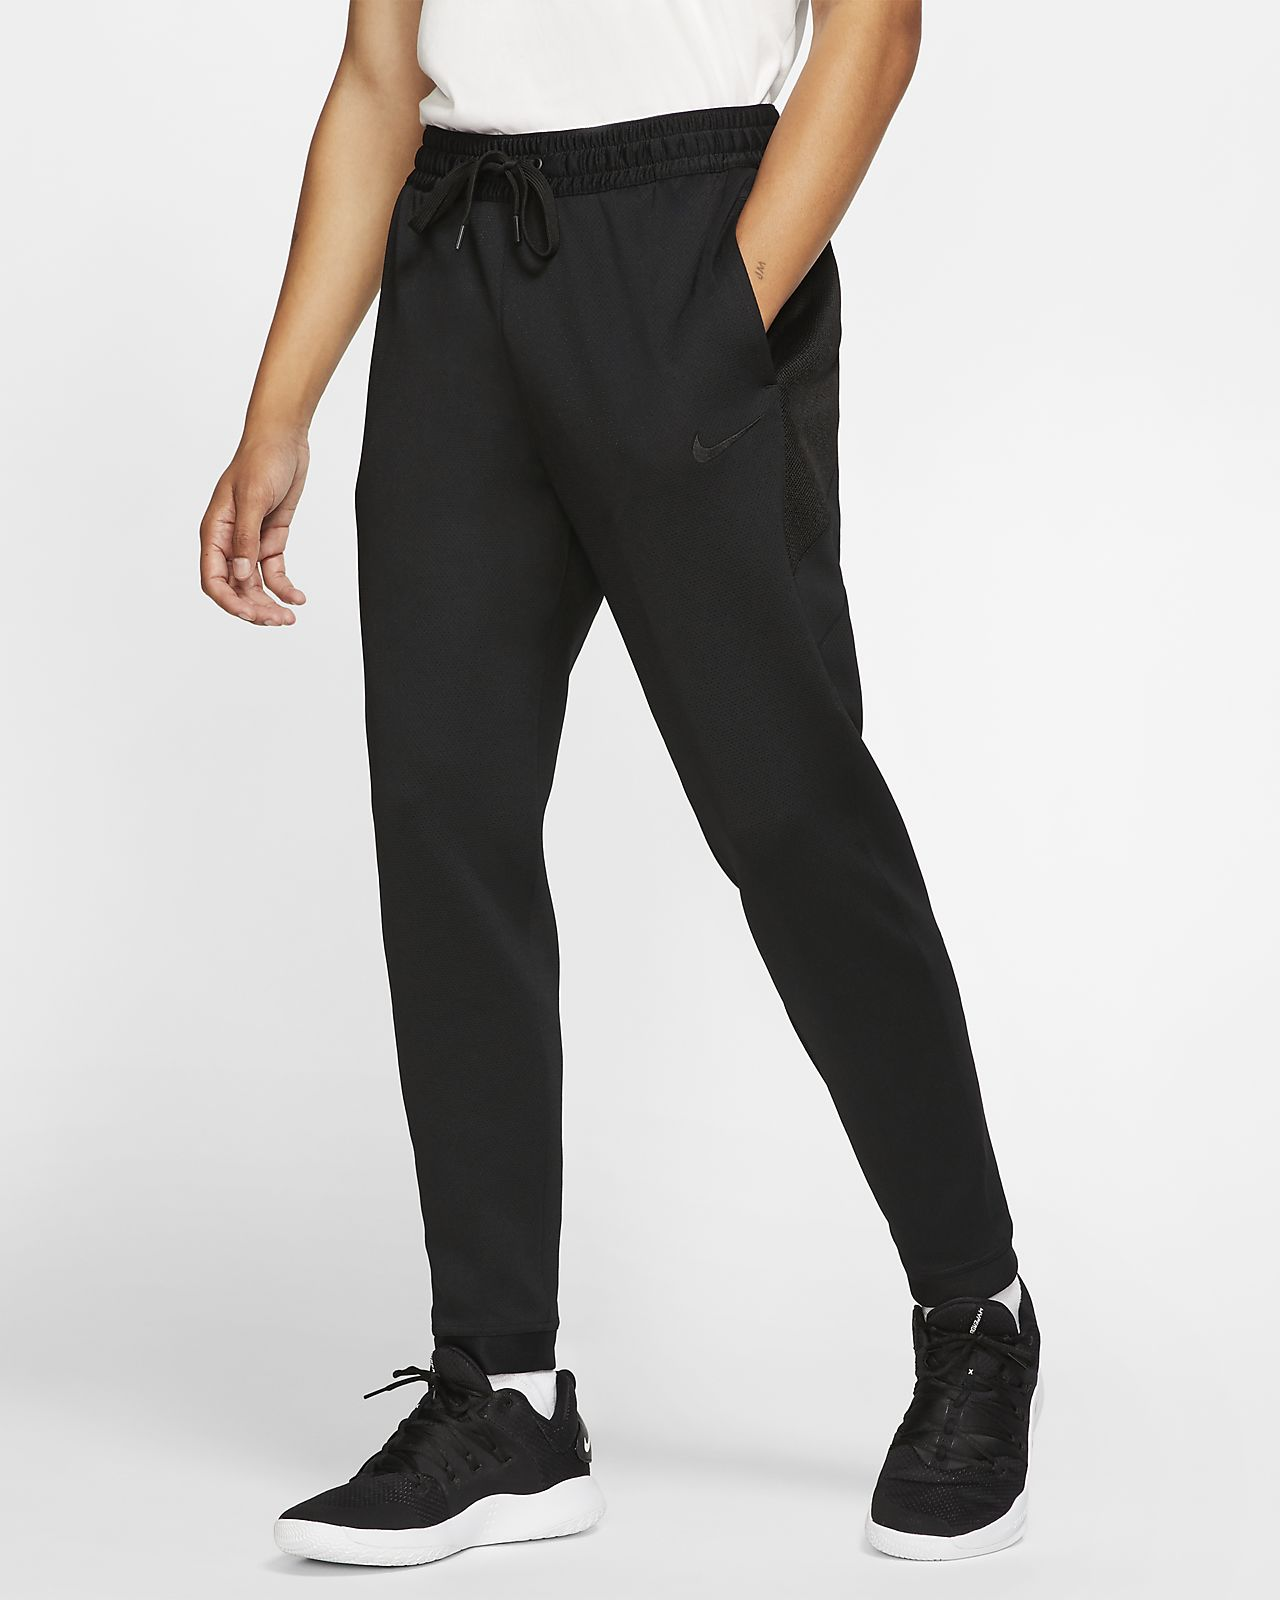 Nike Therma Flex Showtime Men's Basketball Trousers